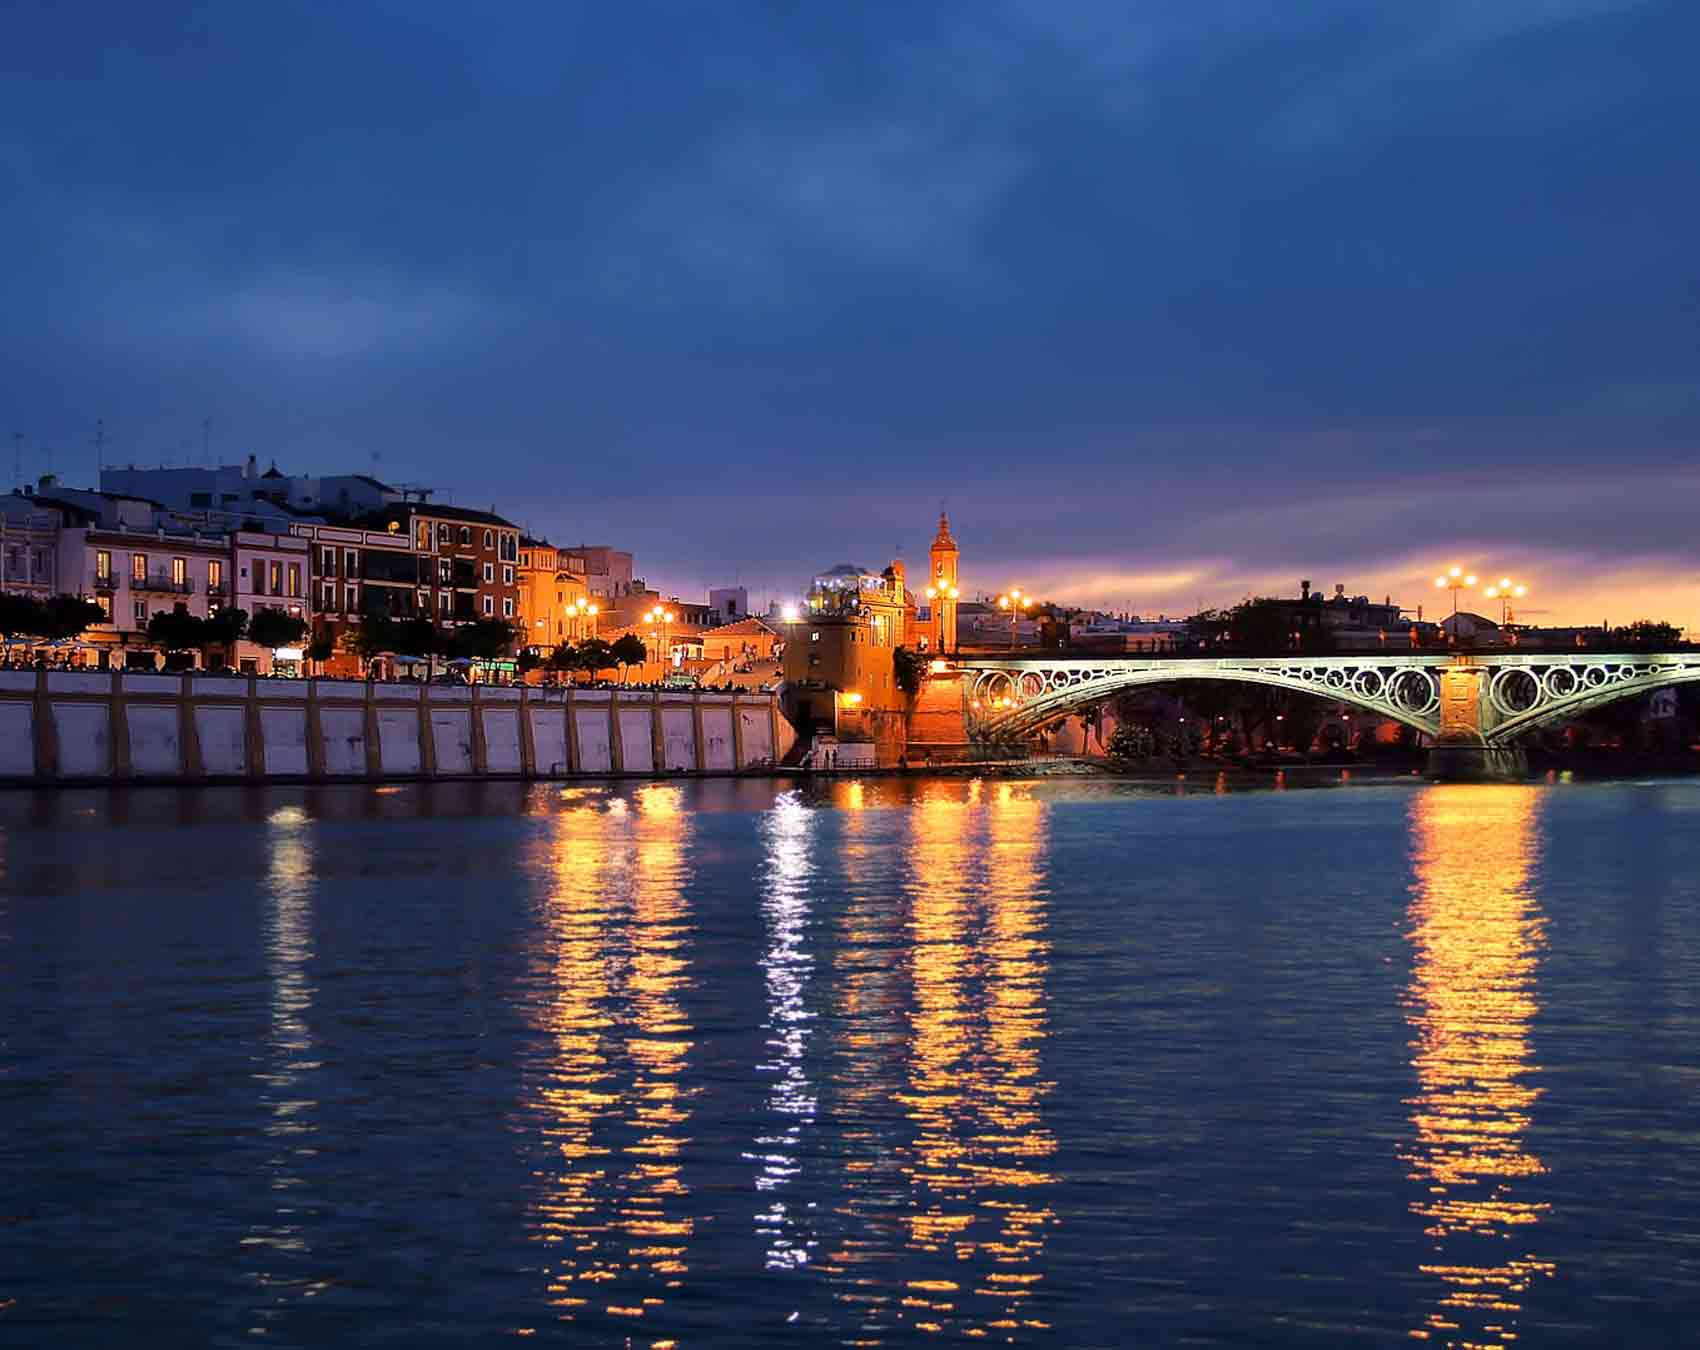 Guadalquivir River Cruise Ticket in Seville